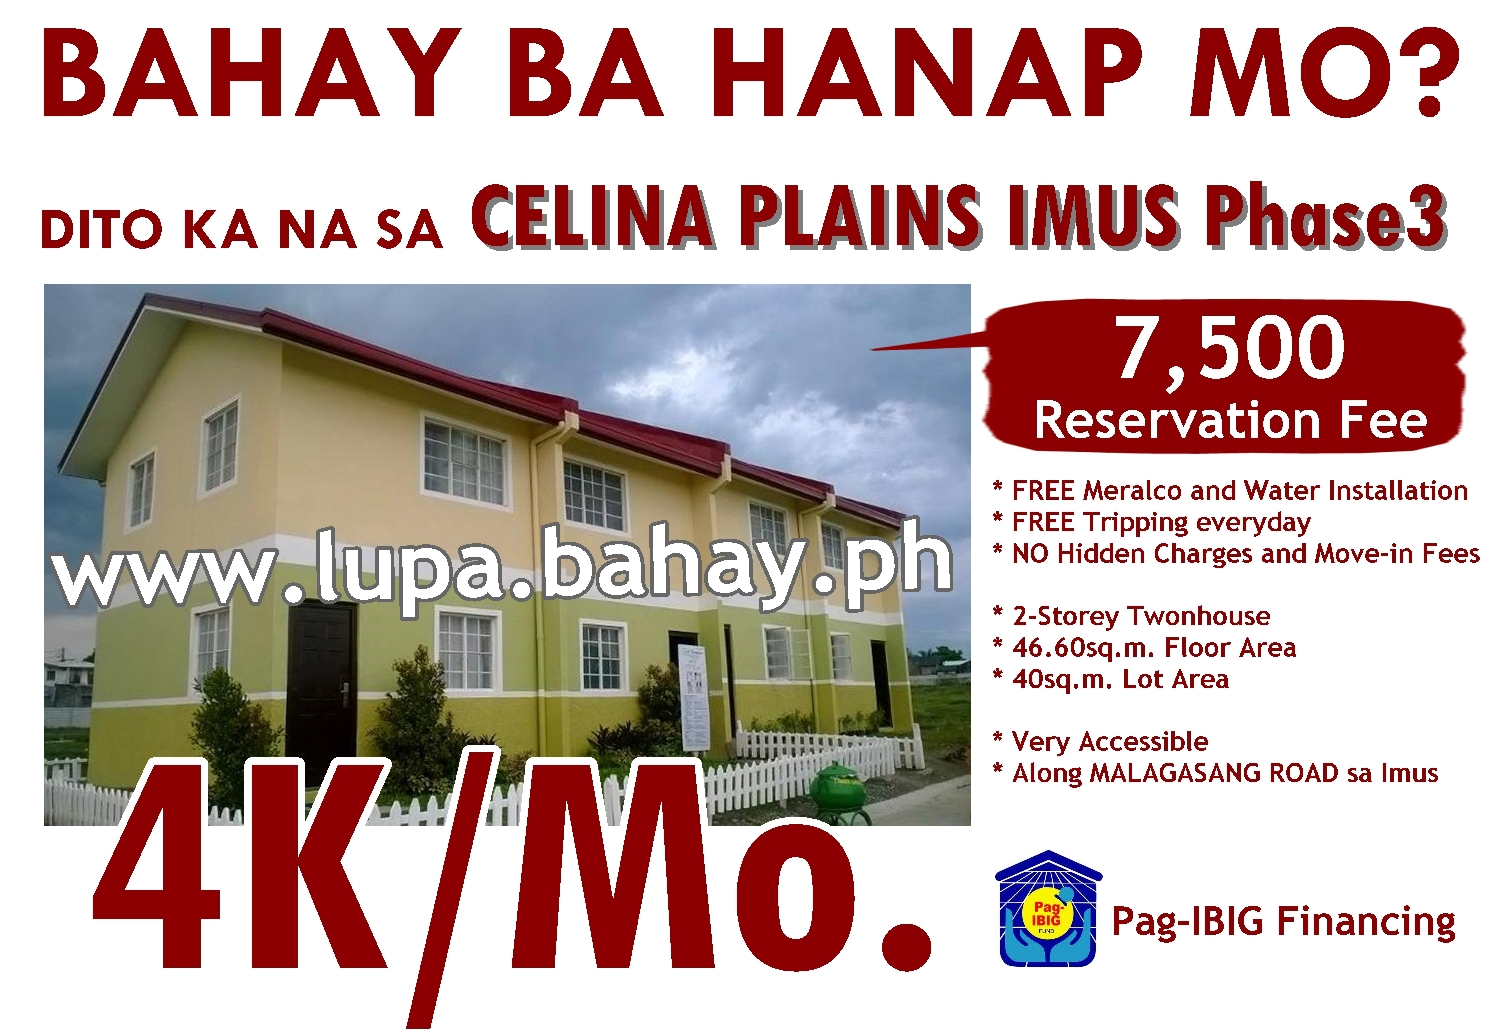 celina plains imus